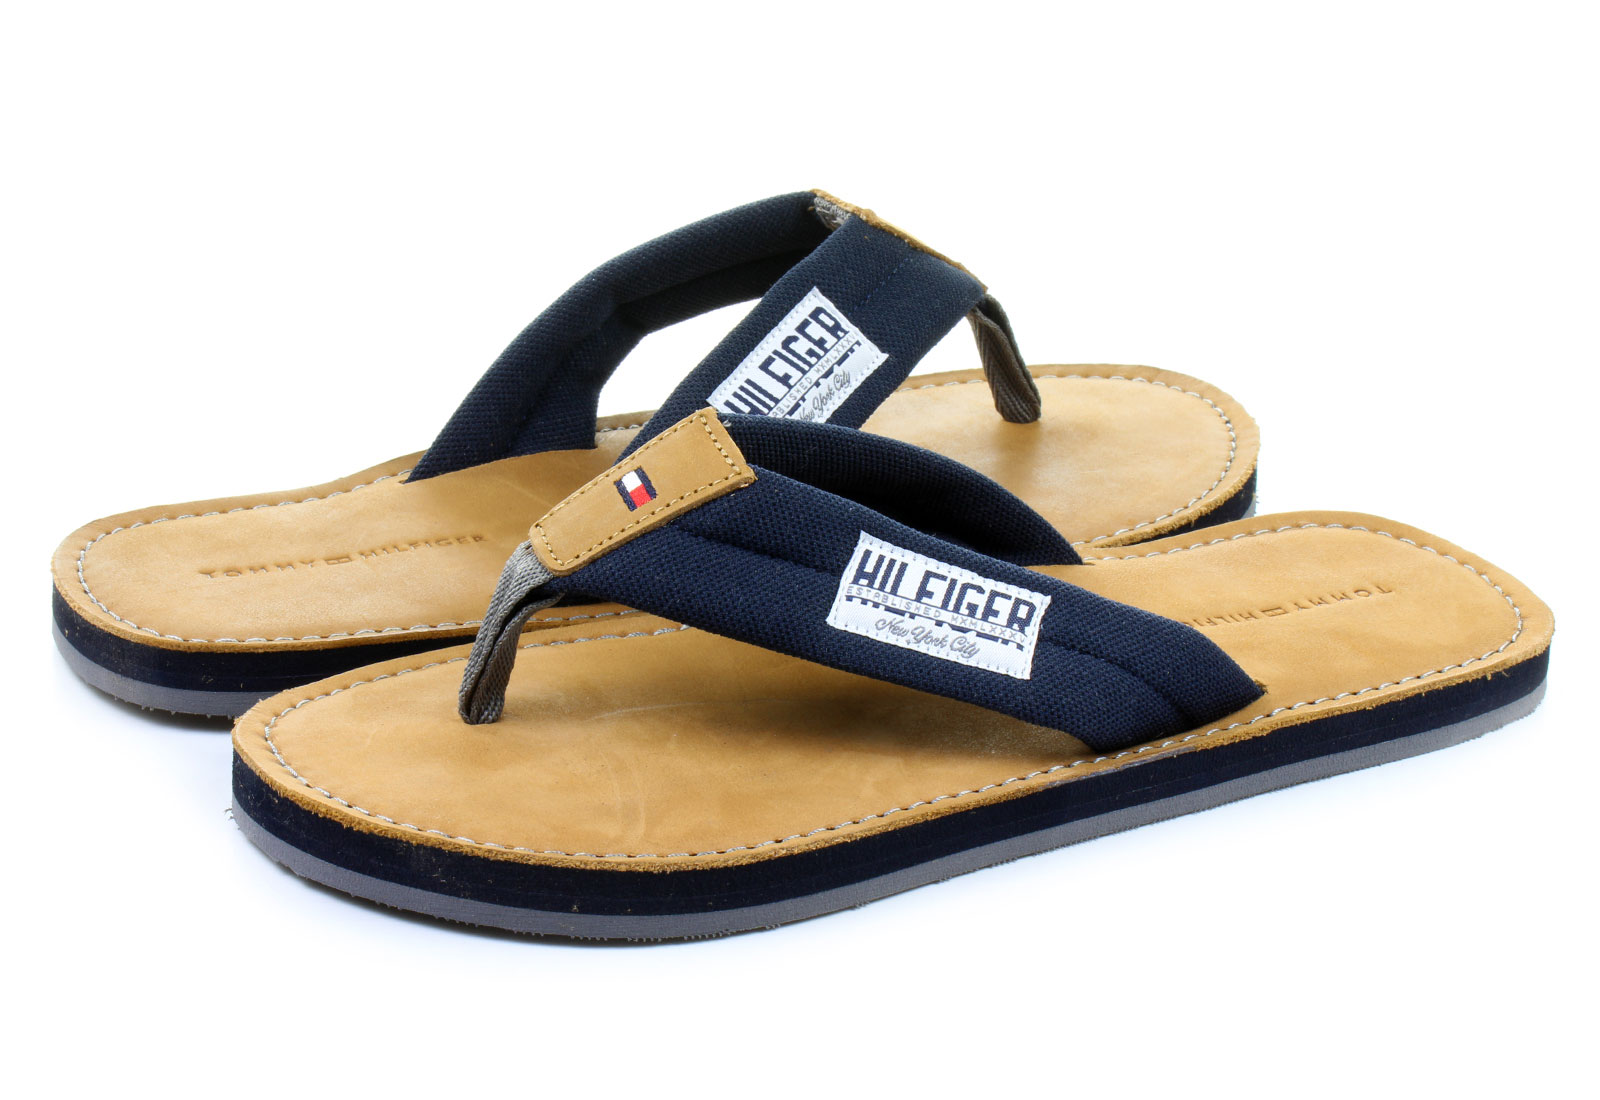 tommy hilfiger slippers banks 10d 16s 0924 403 online shop for sneakers  shoes and boots 63c4f383fd